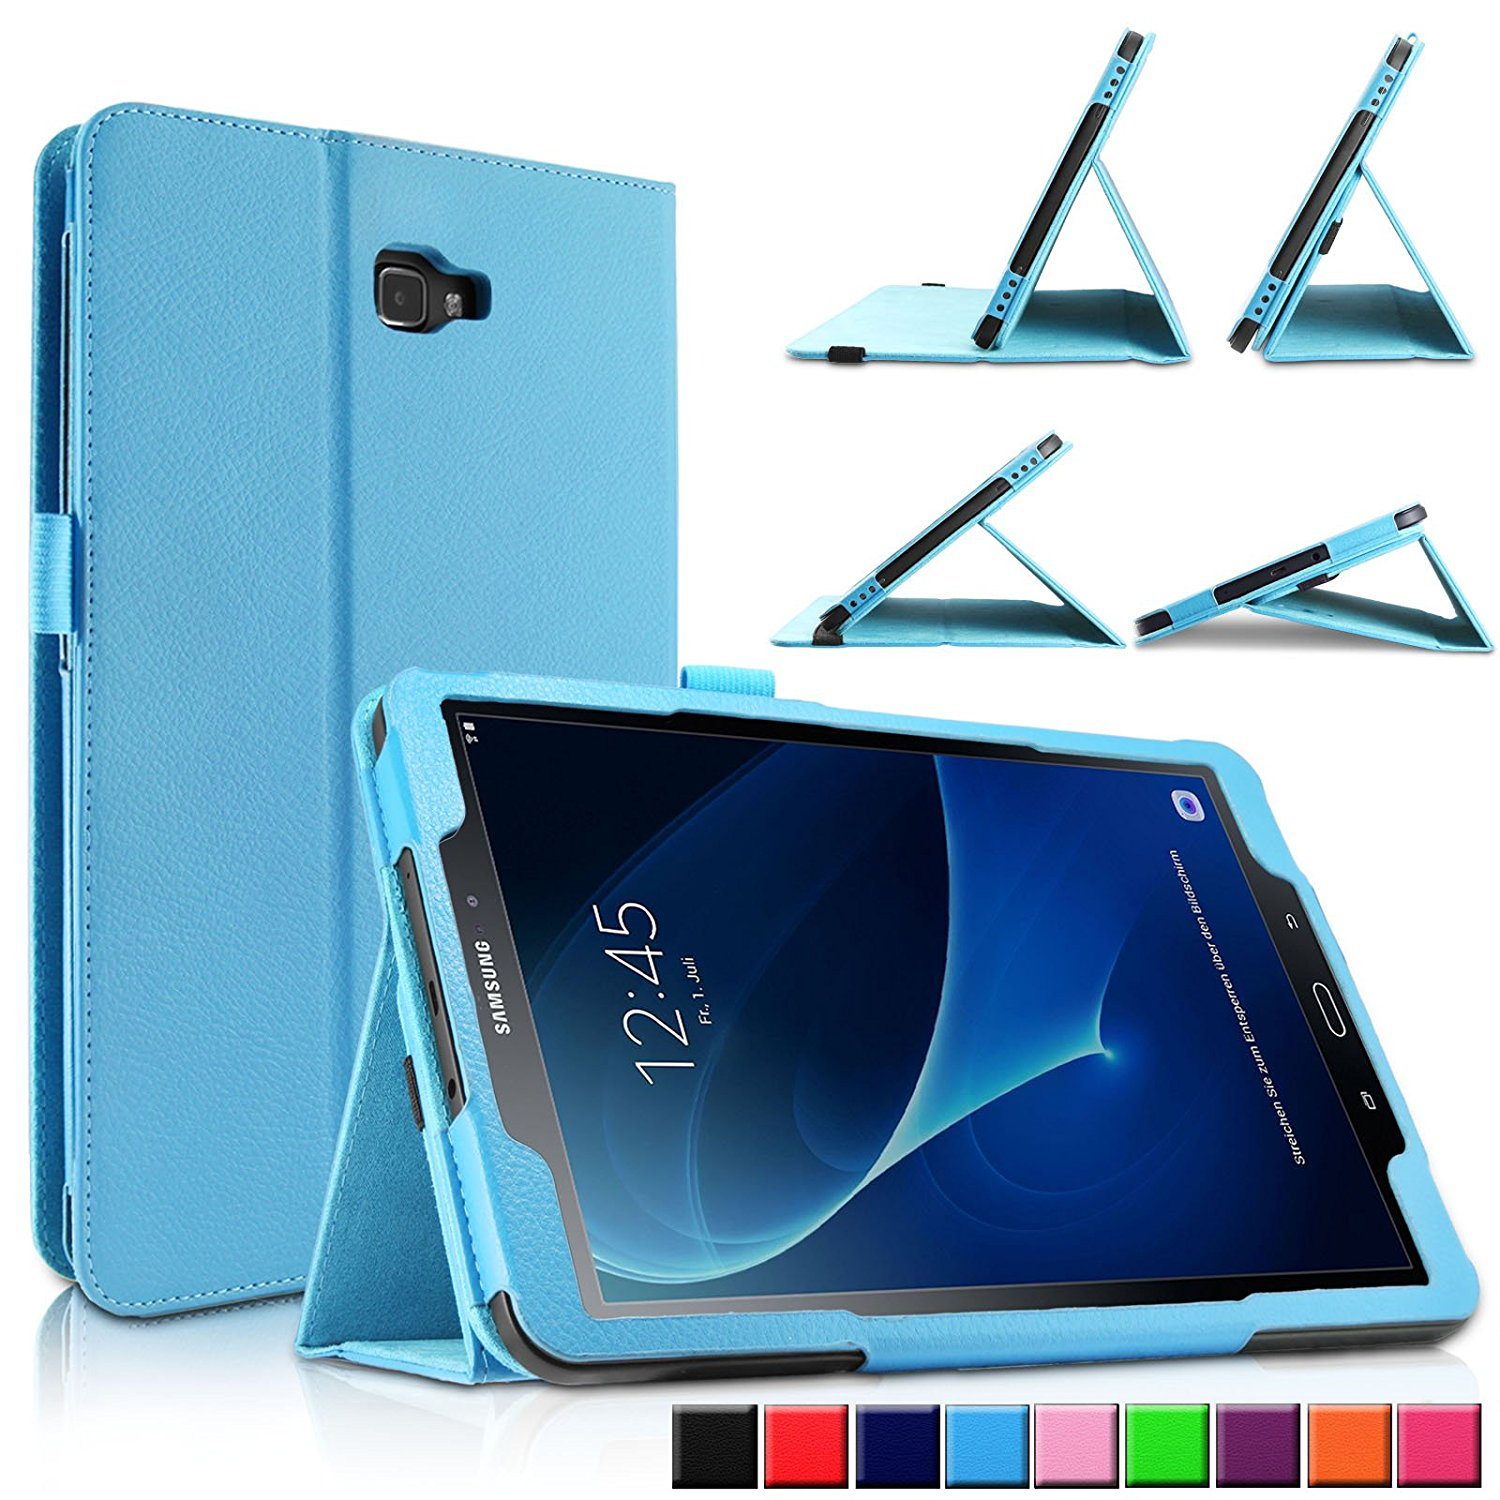 For Samsung Galaxy Tab A6 10.1 inch (2016) T580 T585 Case PU Leather Cover stand Smart case for Samsung Galaxy Tab A6 10.1 Case pu leather handheld smart cover case for samsung for galaxy tab s3 new for samsung for galaxy tab 3 9 7 case cover stand